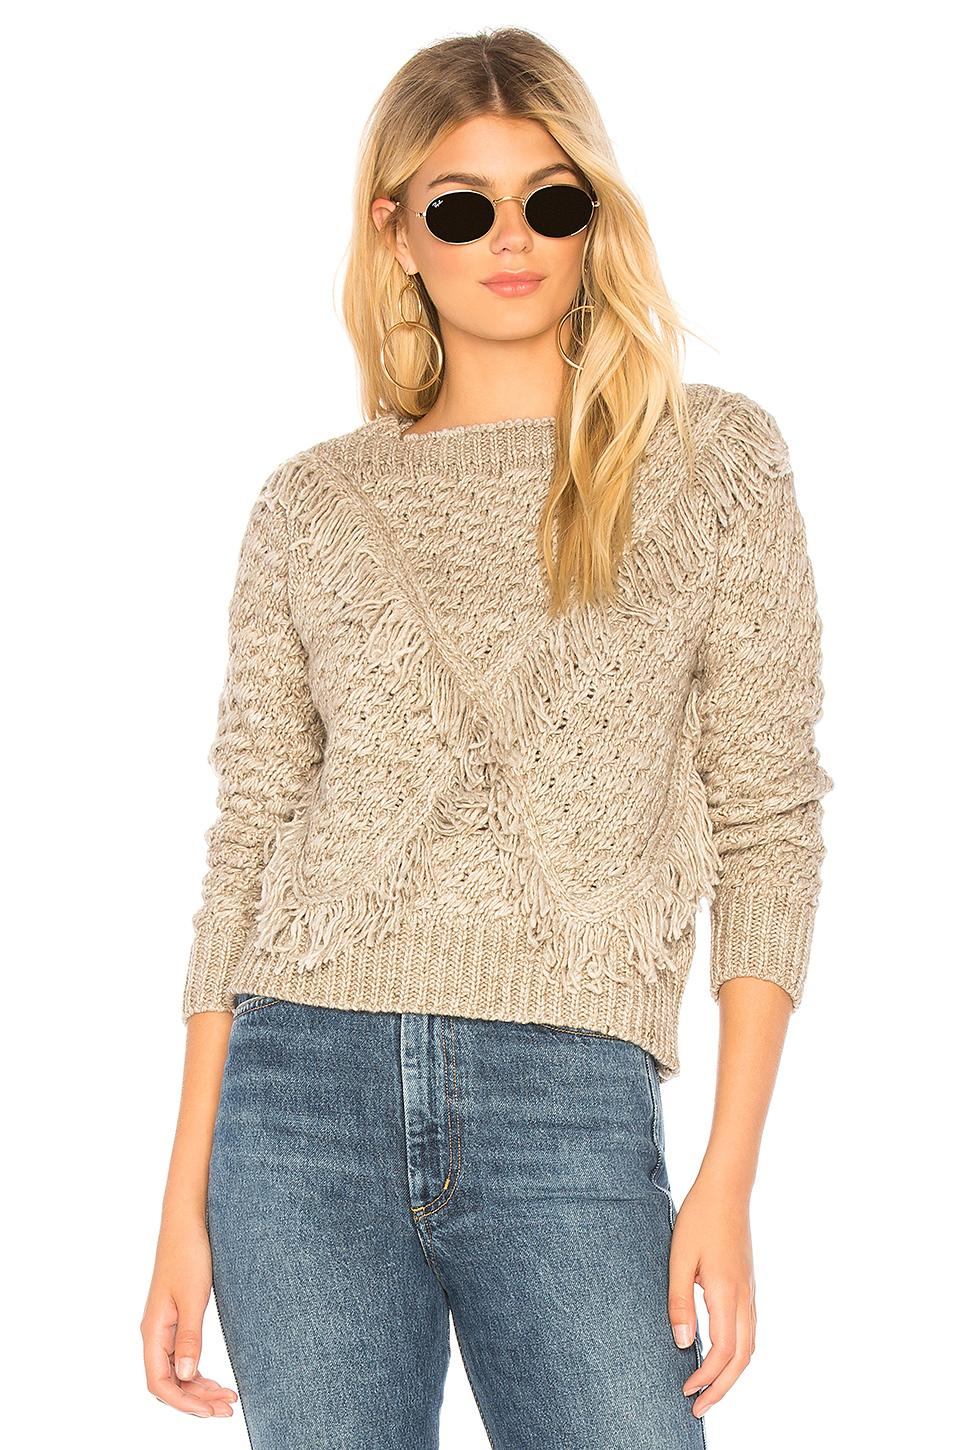 Majorelle Cable Knit Sweater In Grey.